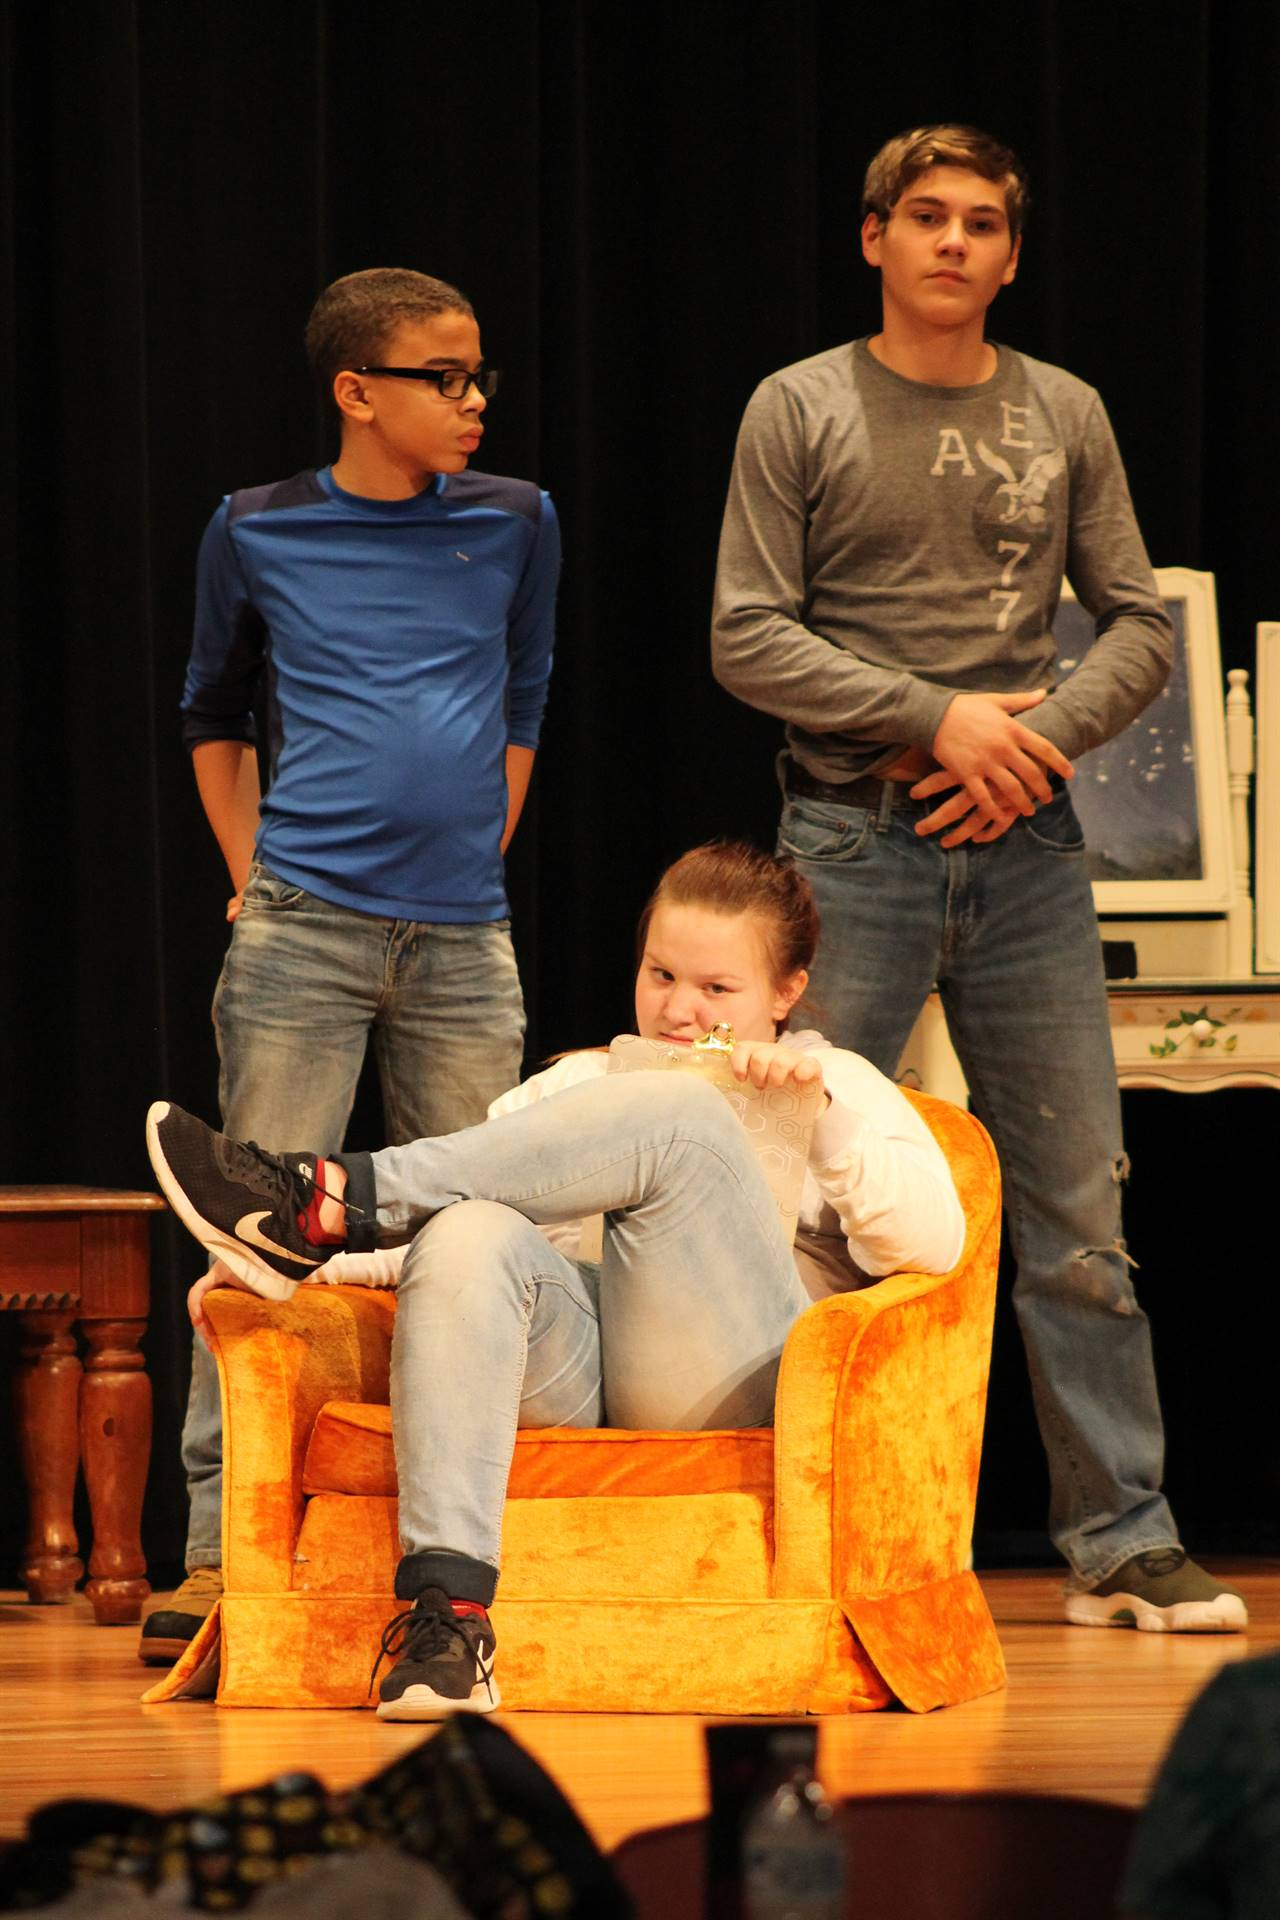 VCMS Drama Production of Murder at the Goon Show